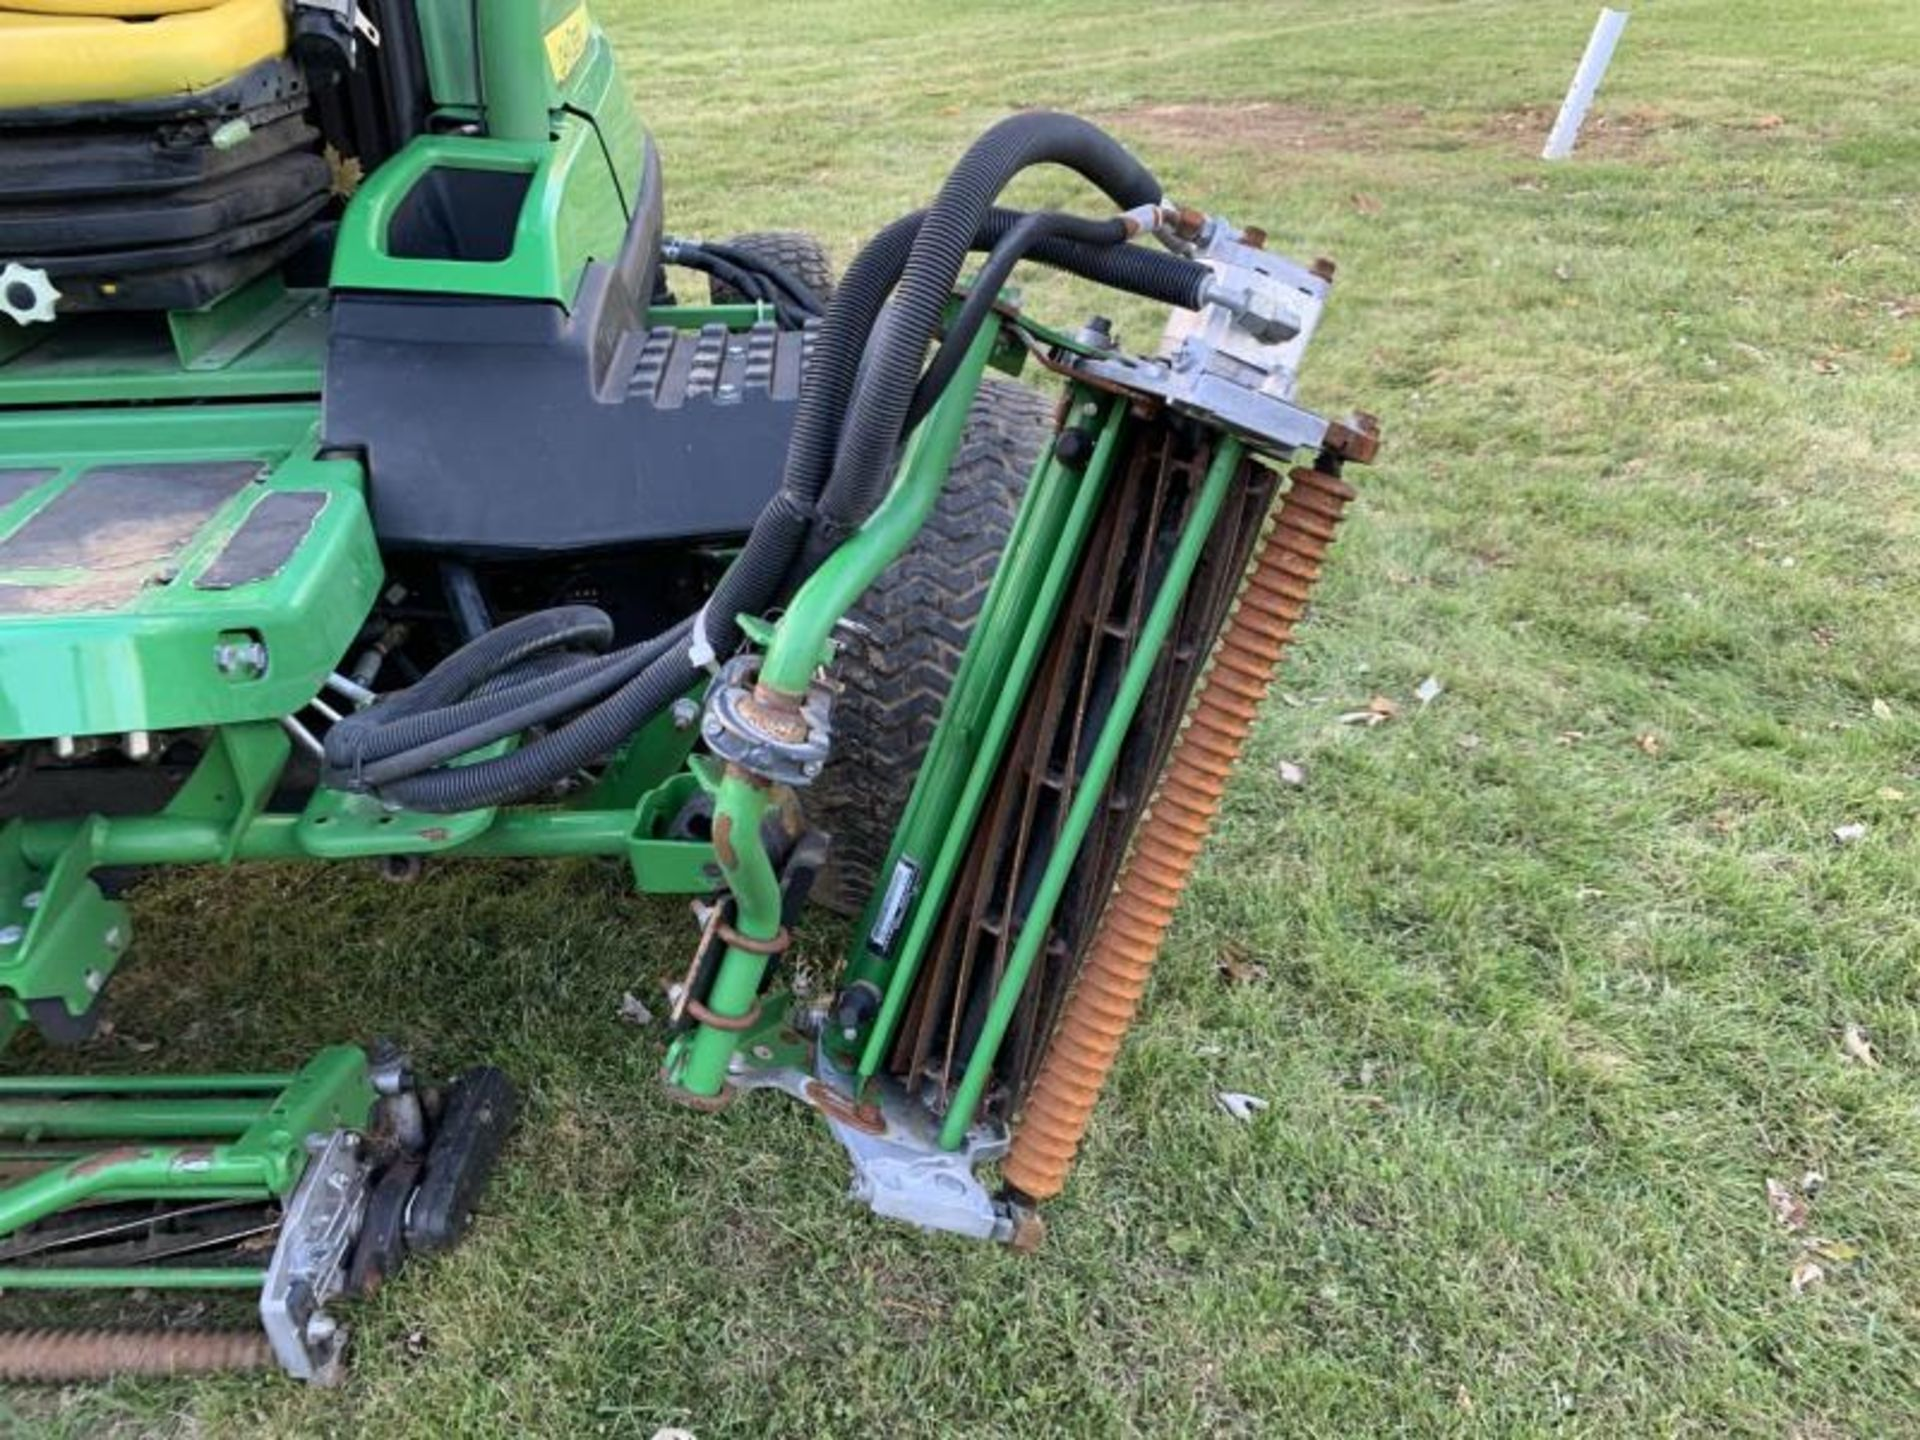 2016 John Deere 7500A Precision Cut 2WD T4, 2,355 Hours, SN: 1TC750AVLGR030141 - Image 10 of 17